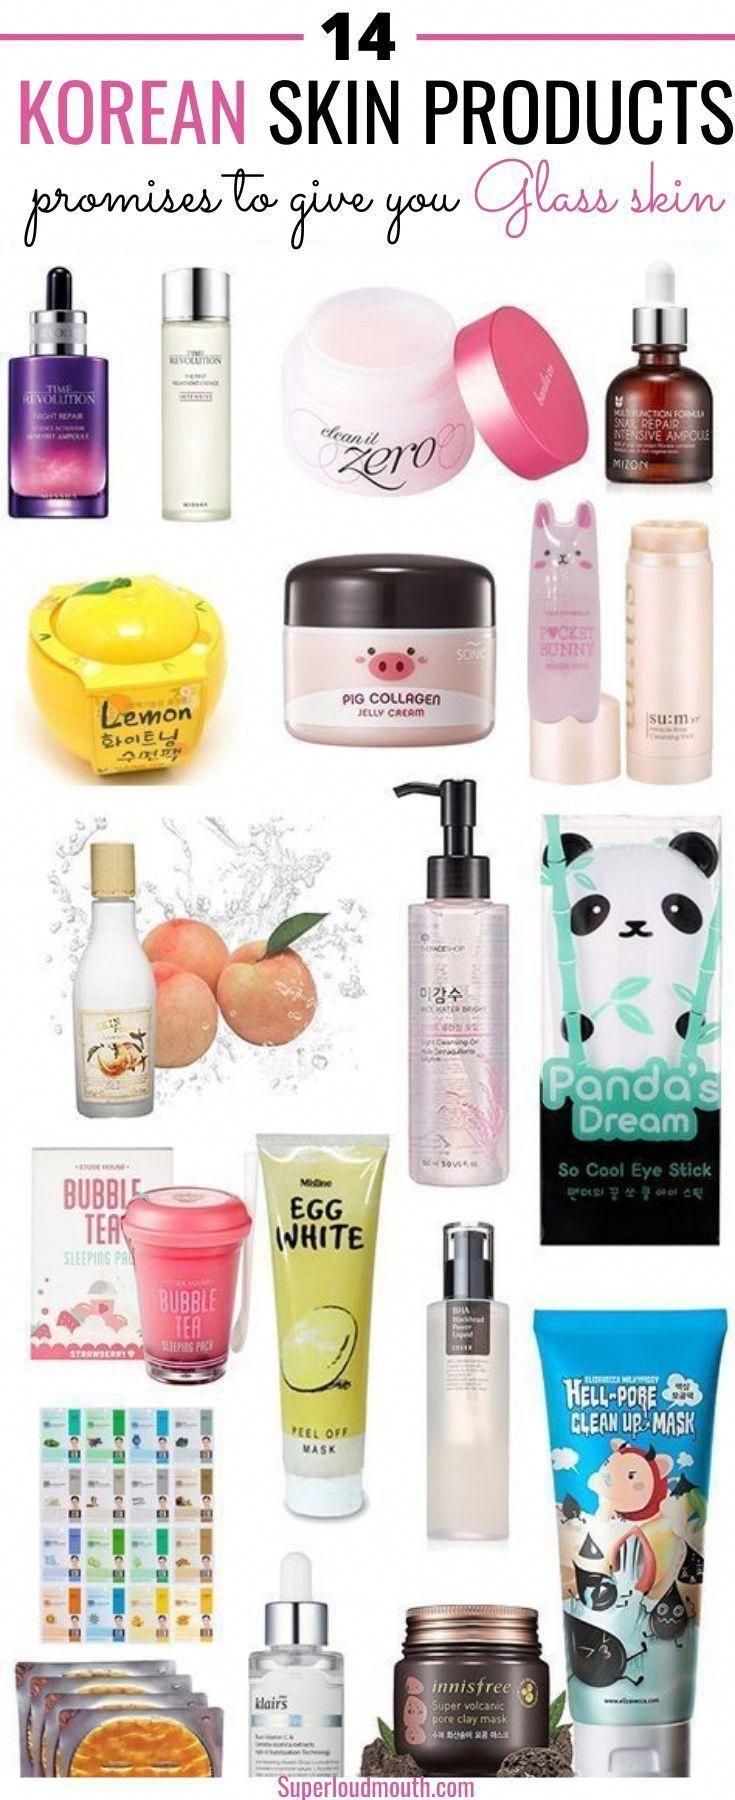 14 Korean Skin Products Promises To Give You Glass Skin Haircareoil Glass Haircareoil Korean Products Promises Glass Skin Natural Skin Care Skin Care